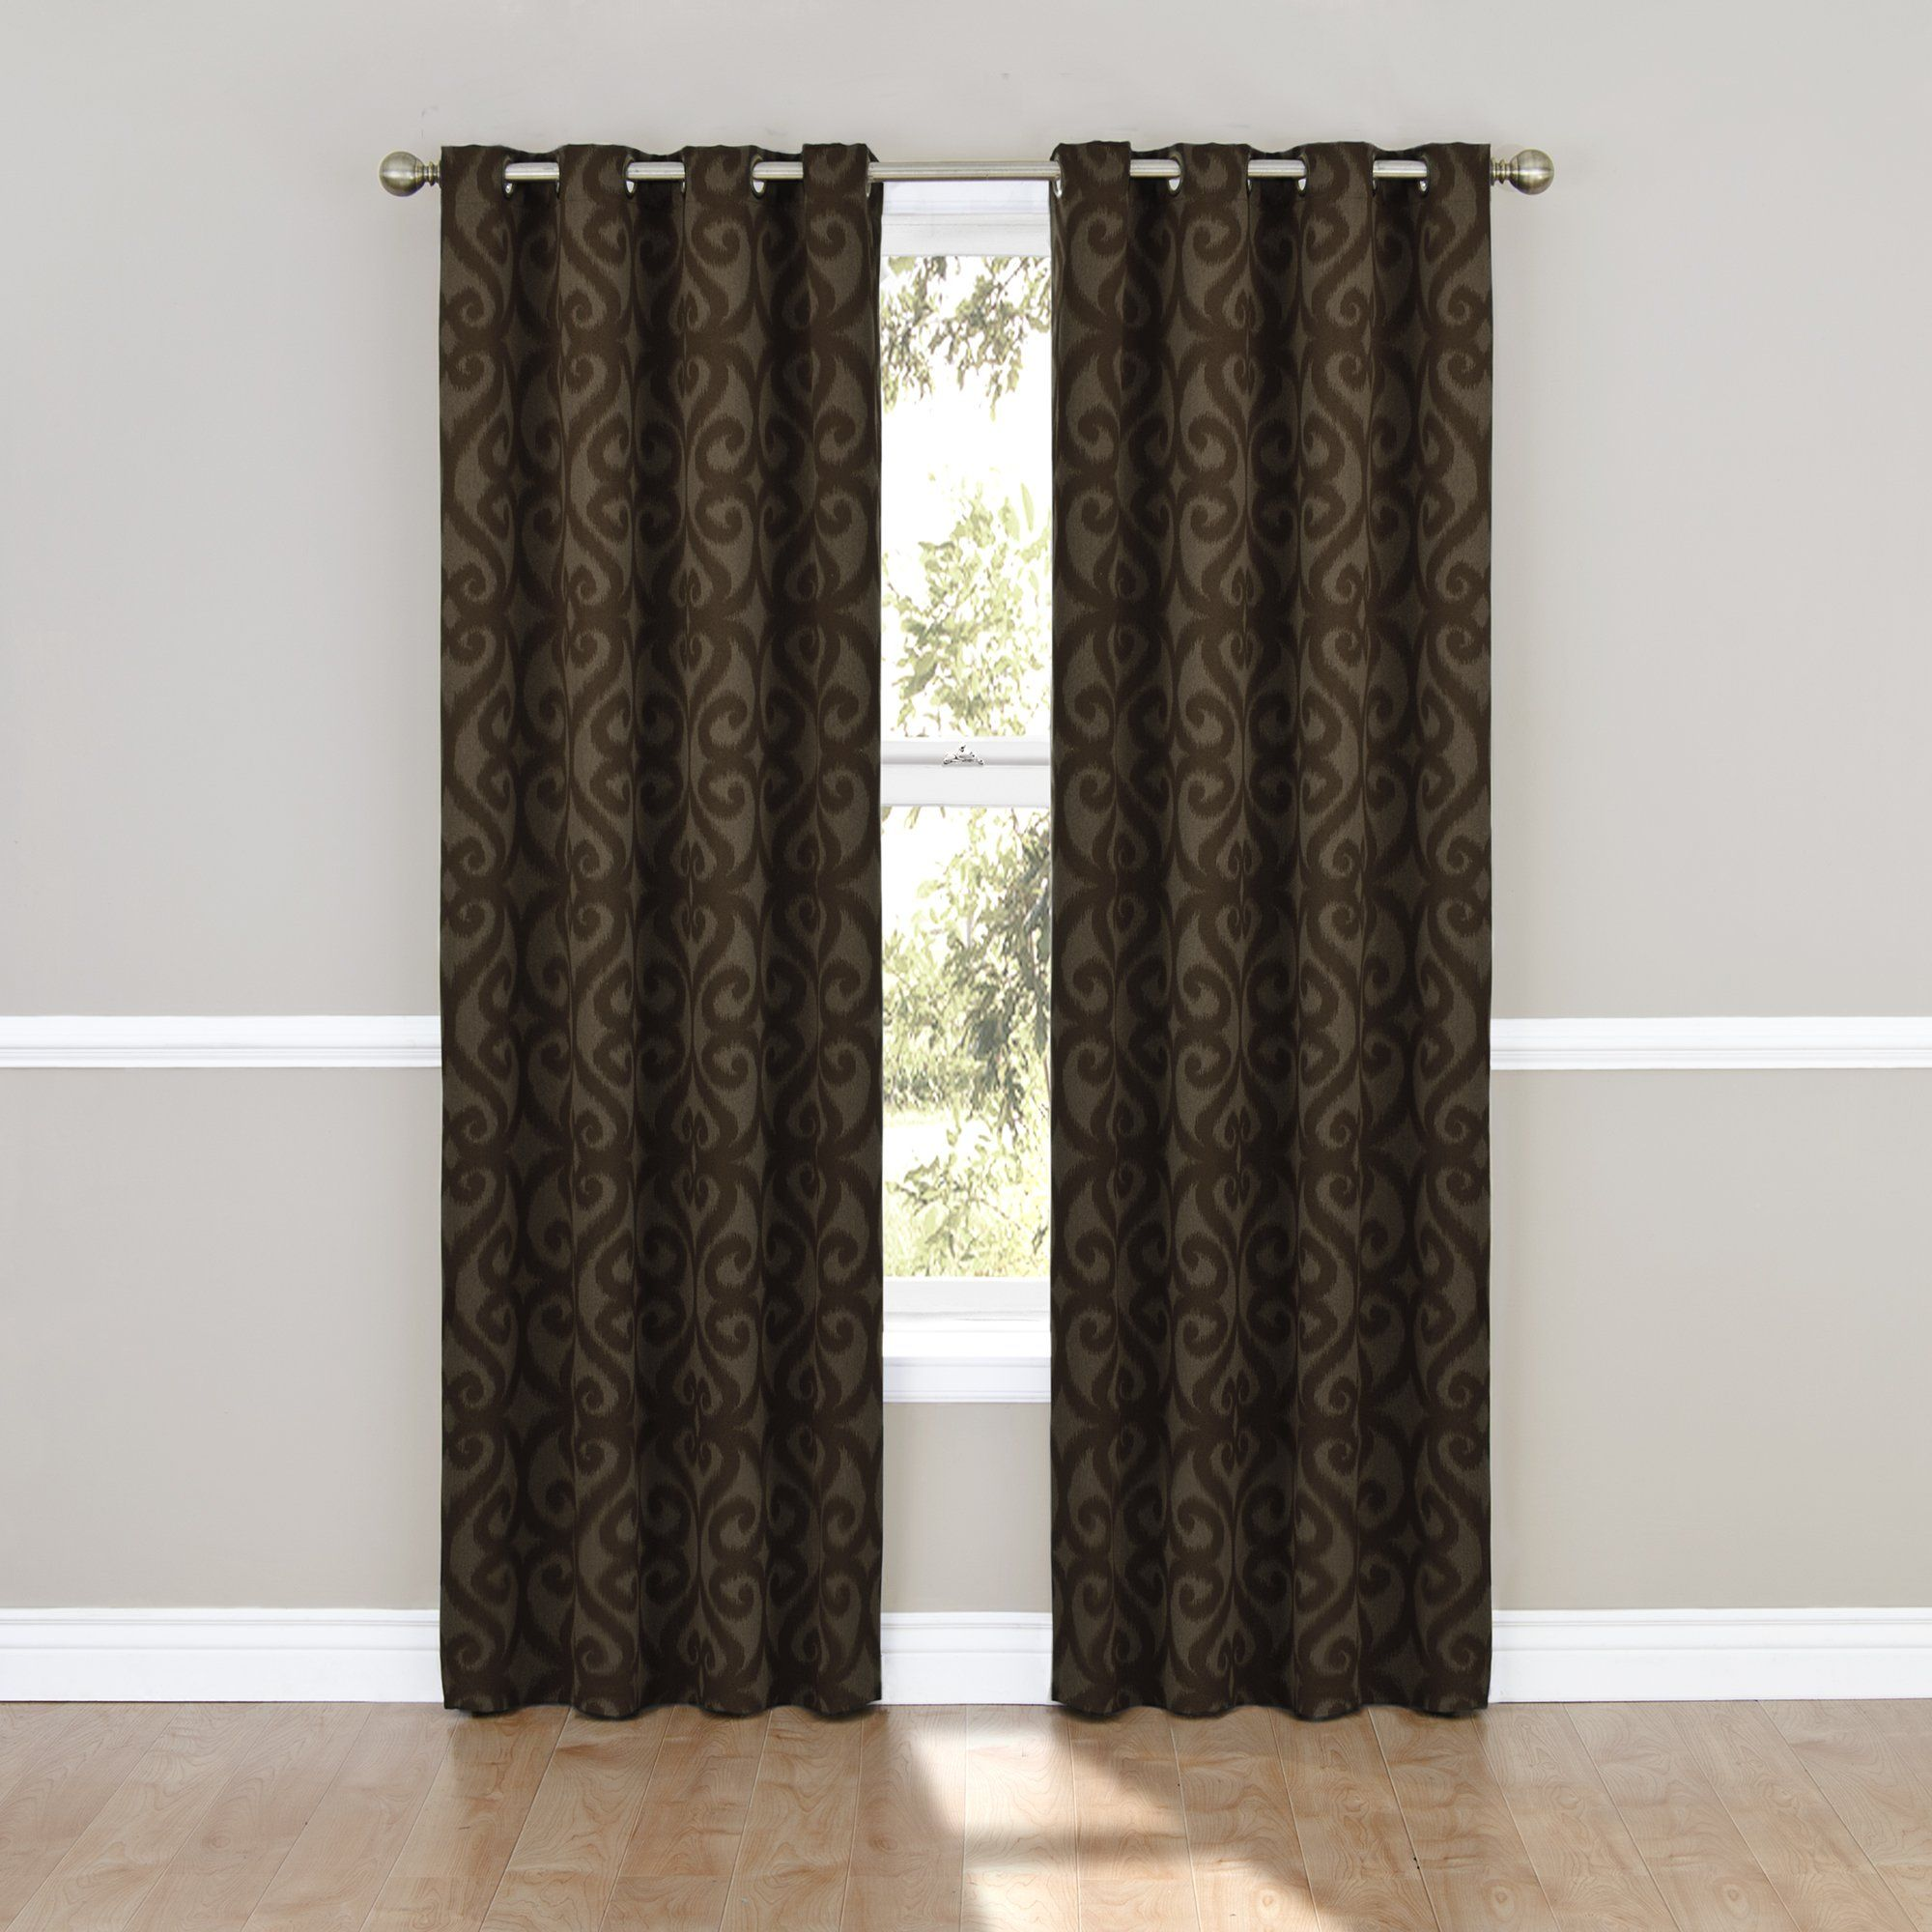 Bed bath and beyond window shades  amazon  eclipse patricia blackout grommet curtain panel